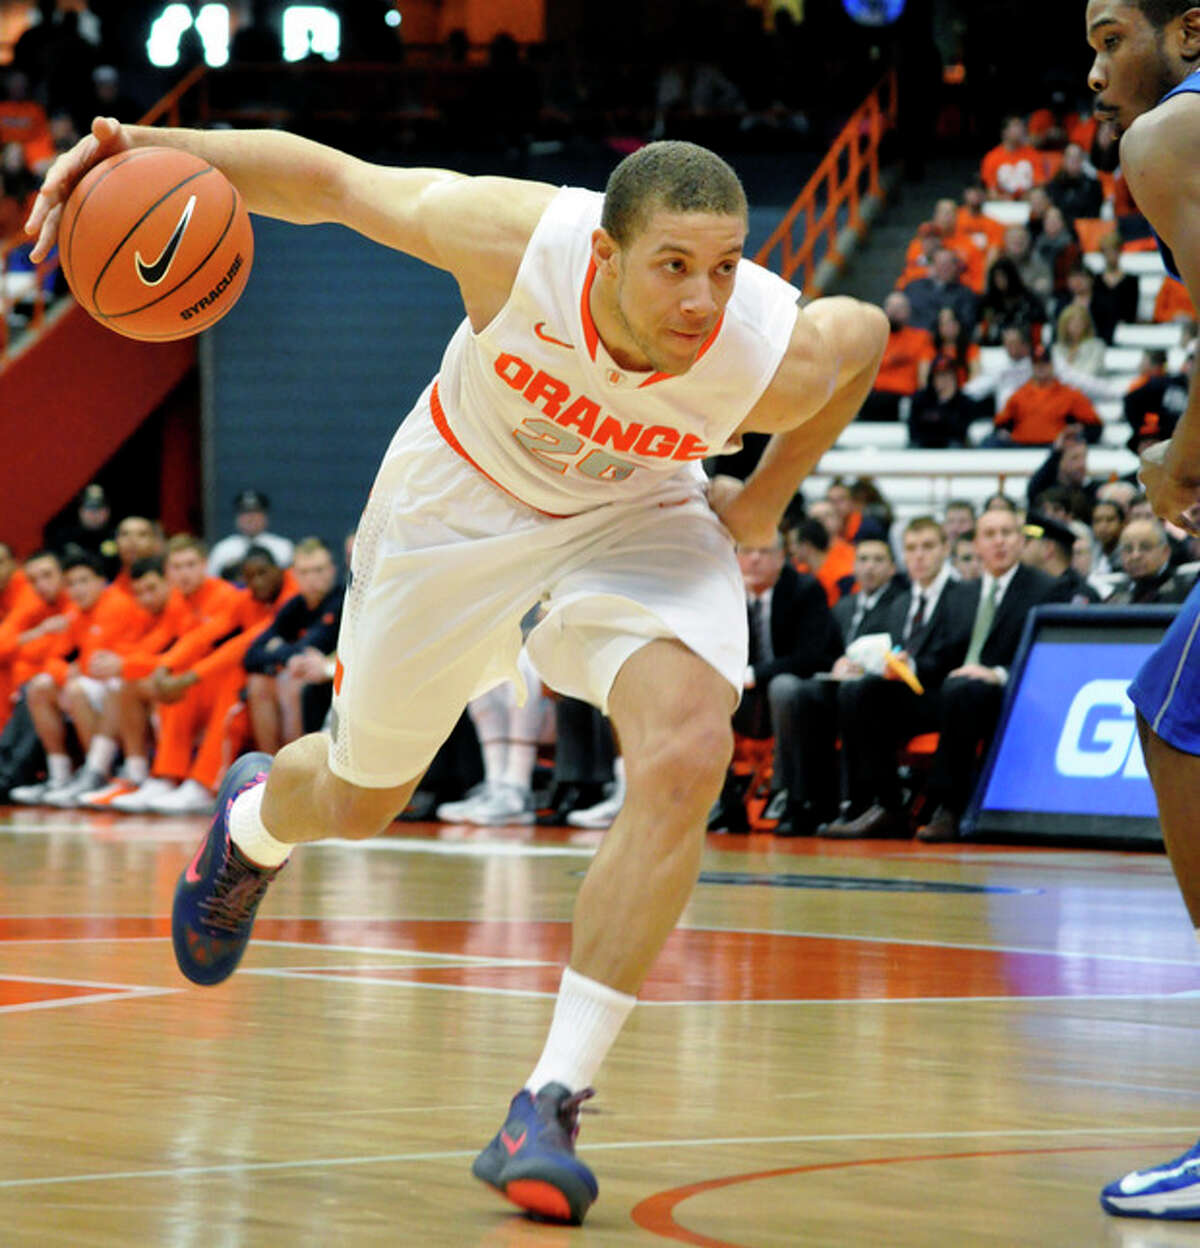 Syracuse's Brandon Triche drives aganst Central Connecticut State during the first half of an NCAA college basketball game in Syracuse, N.Y., Monday, Dec. 31, 2012. Syracuse won 96-62. (AP Photo/Kevin Rivoli)